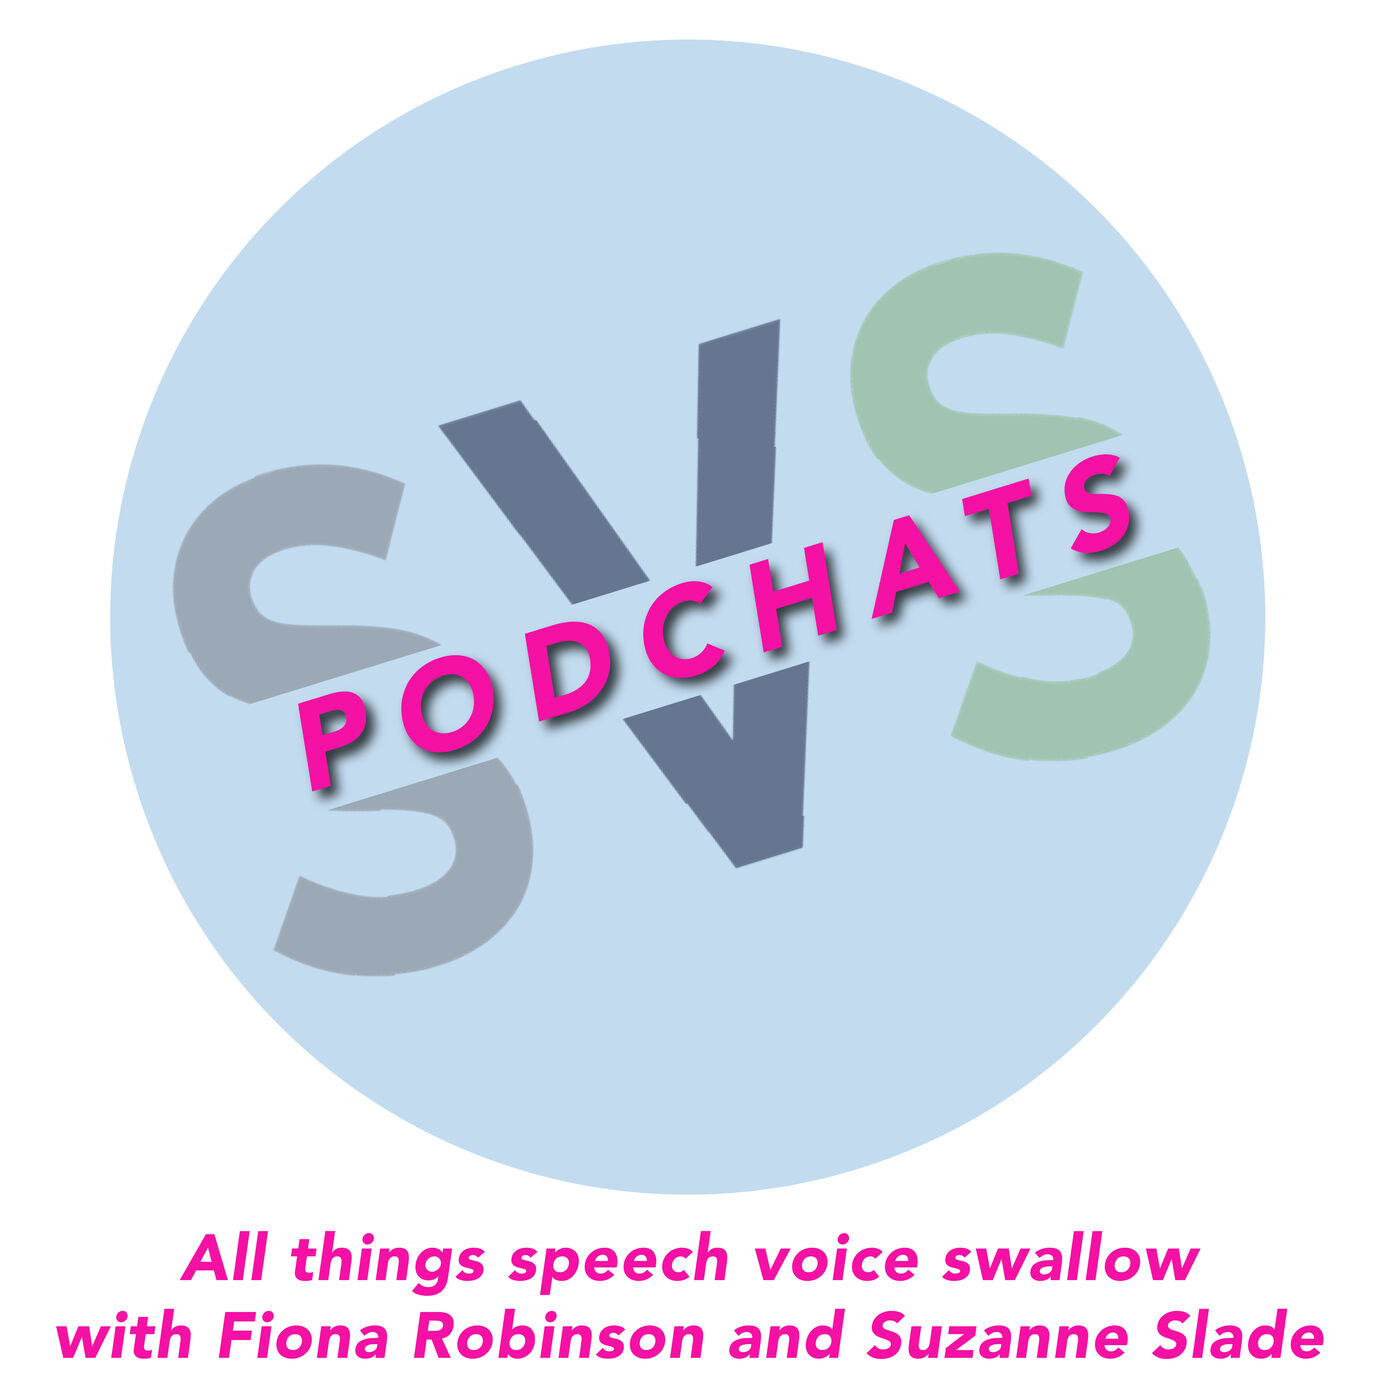 Resilience and Tracheostomy - Challenges in COVID-19 with SVS PodChats and guest Mat Daniel